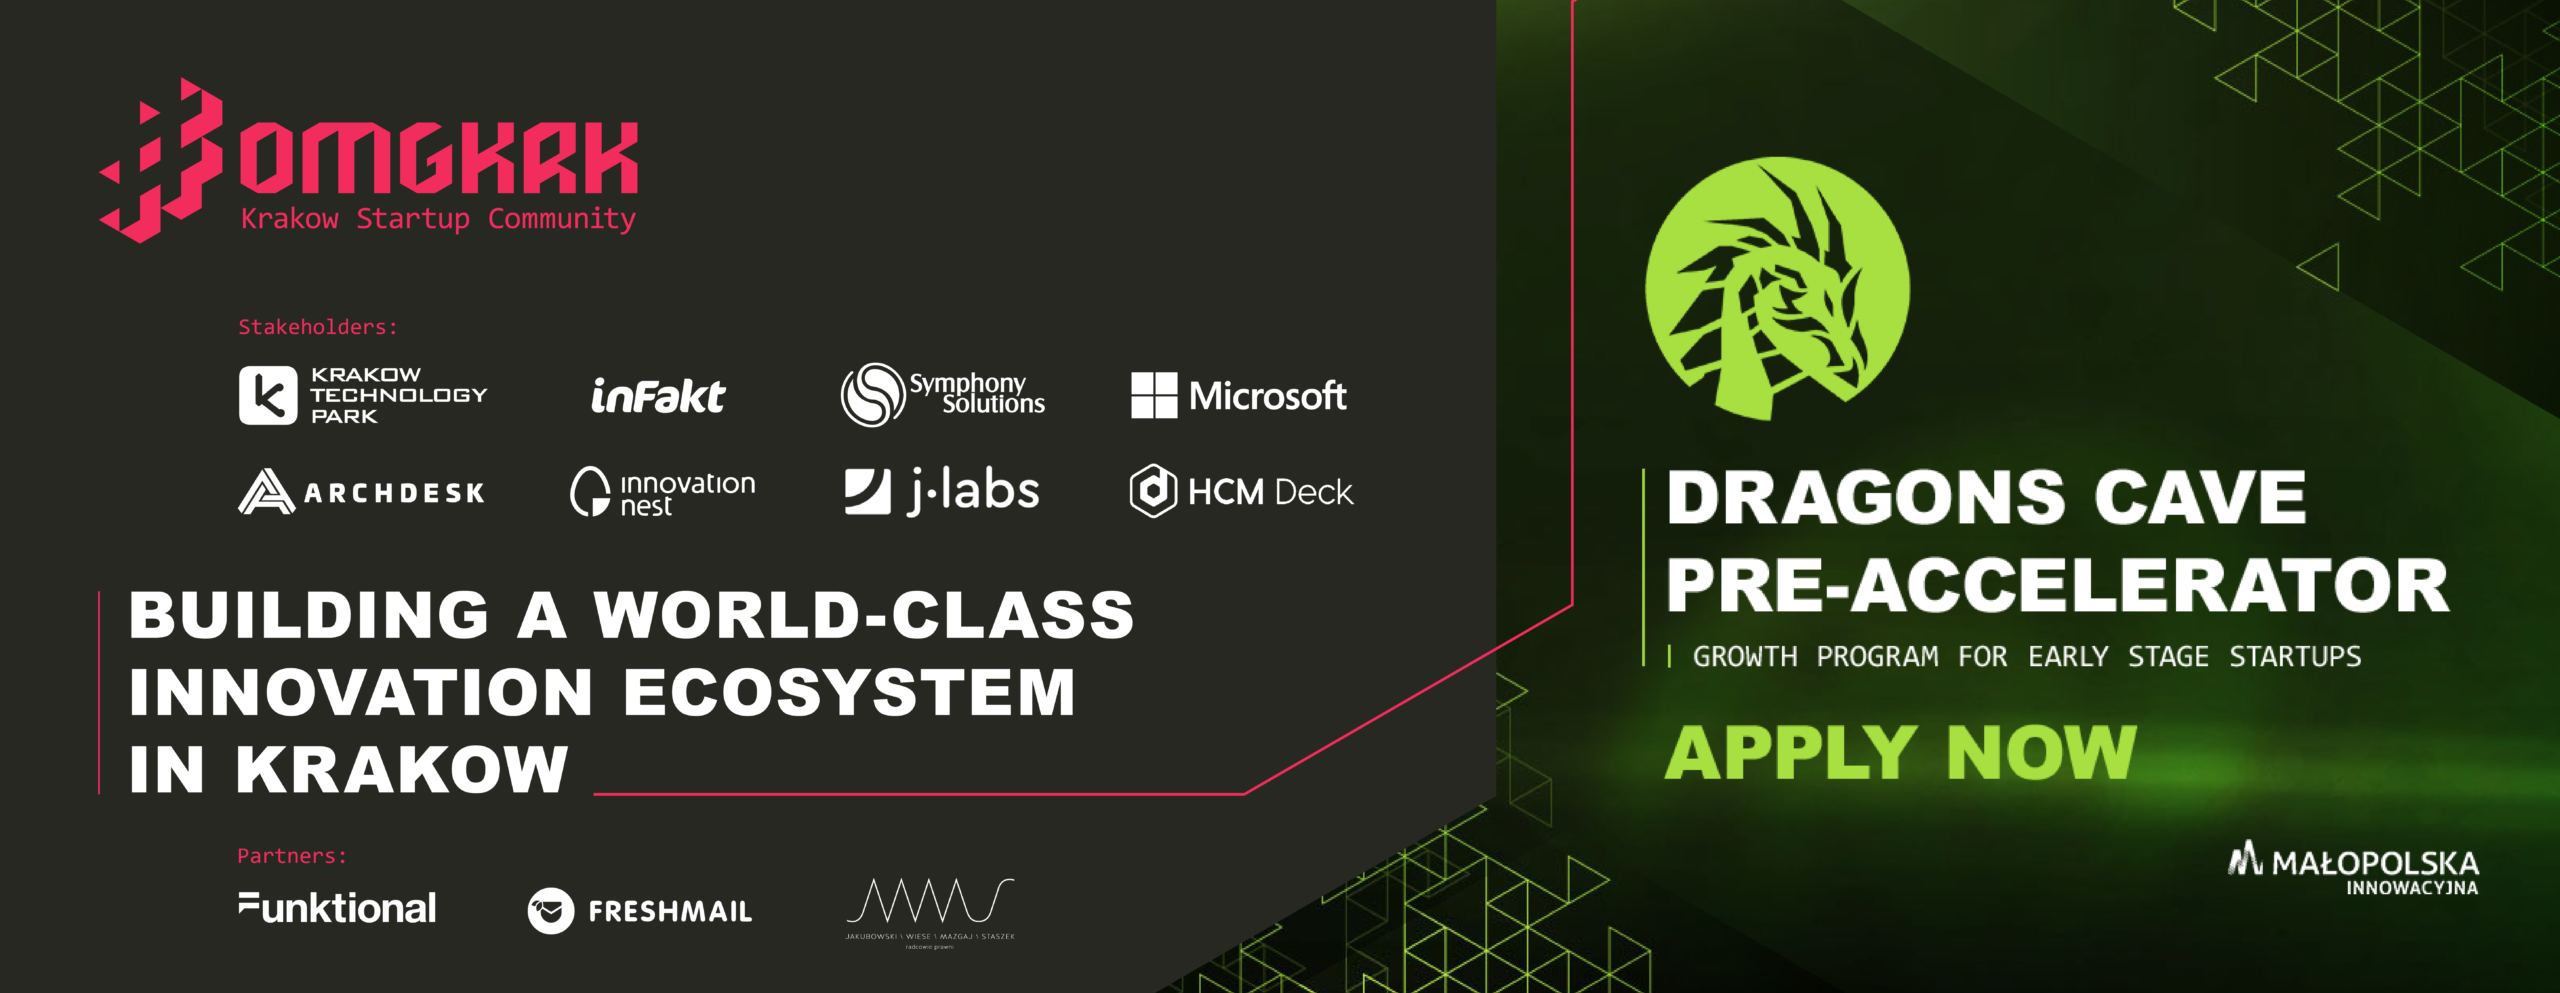 , Applications Open For Dragons Cave Pre-Accelerator